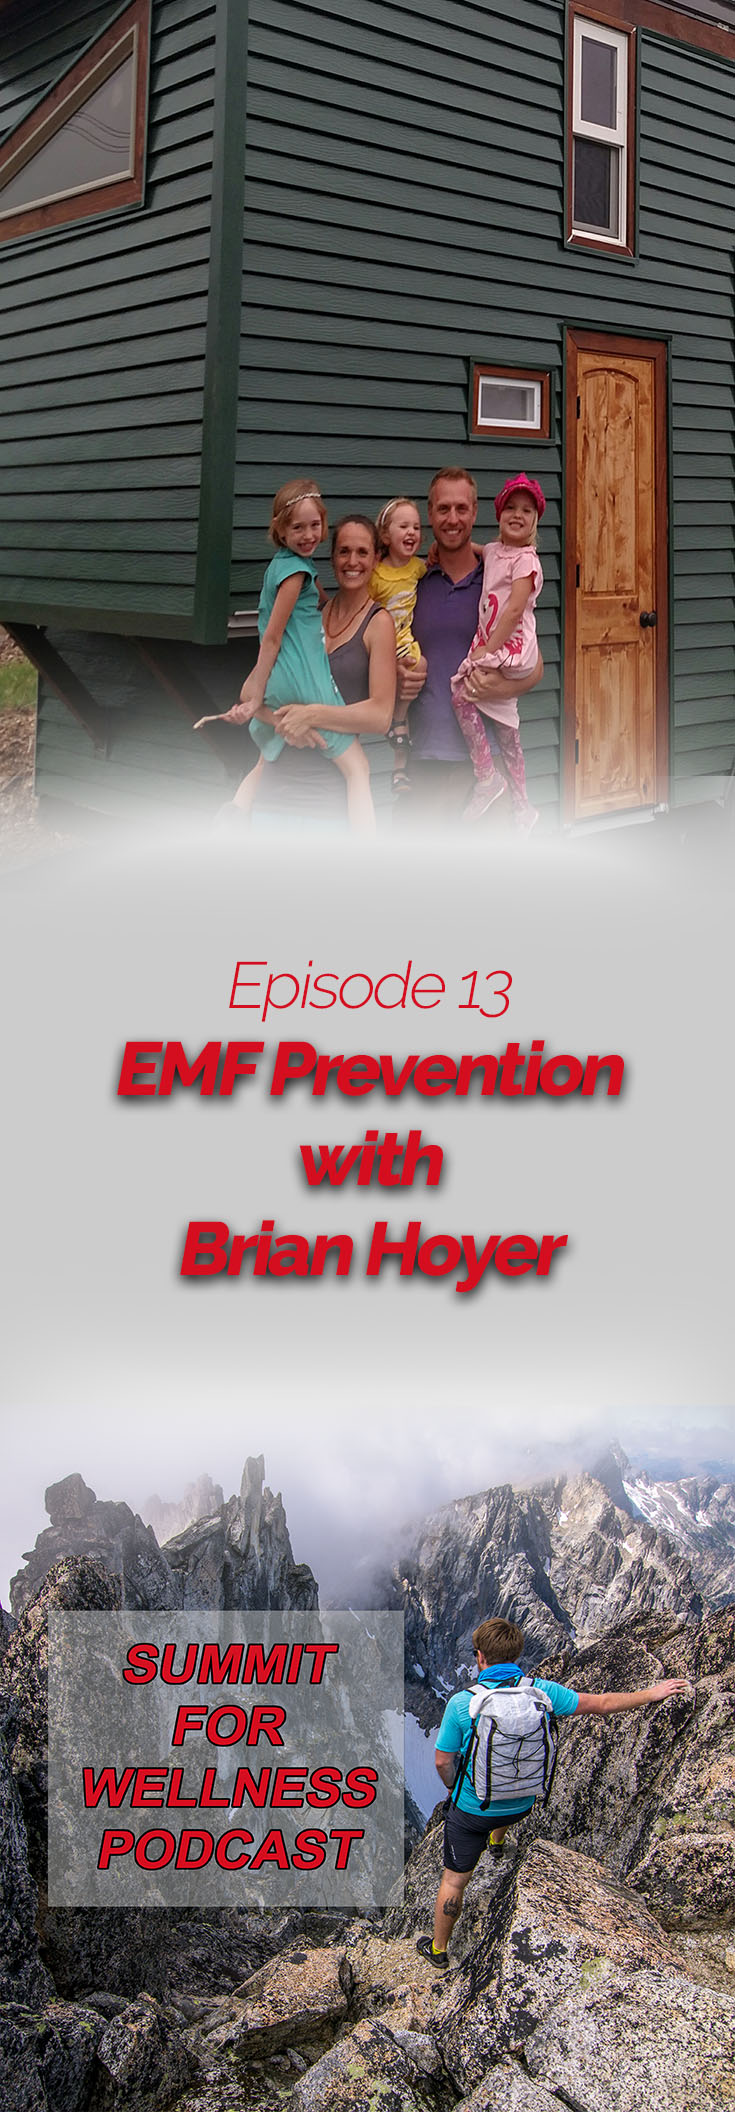 Learn some ways to shield your house from harmful emfs